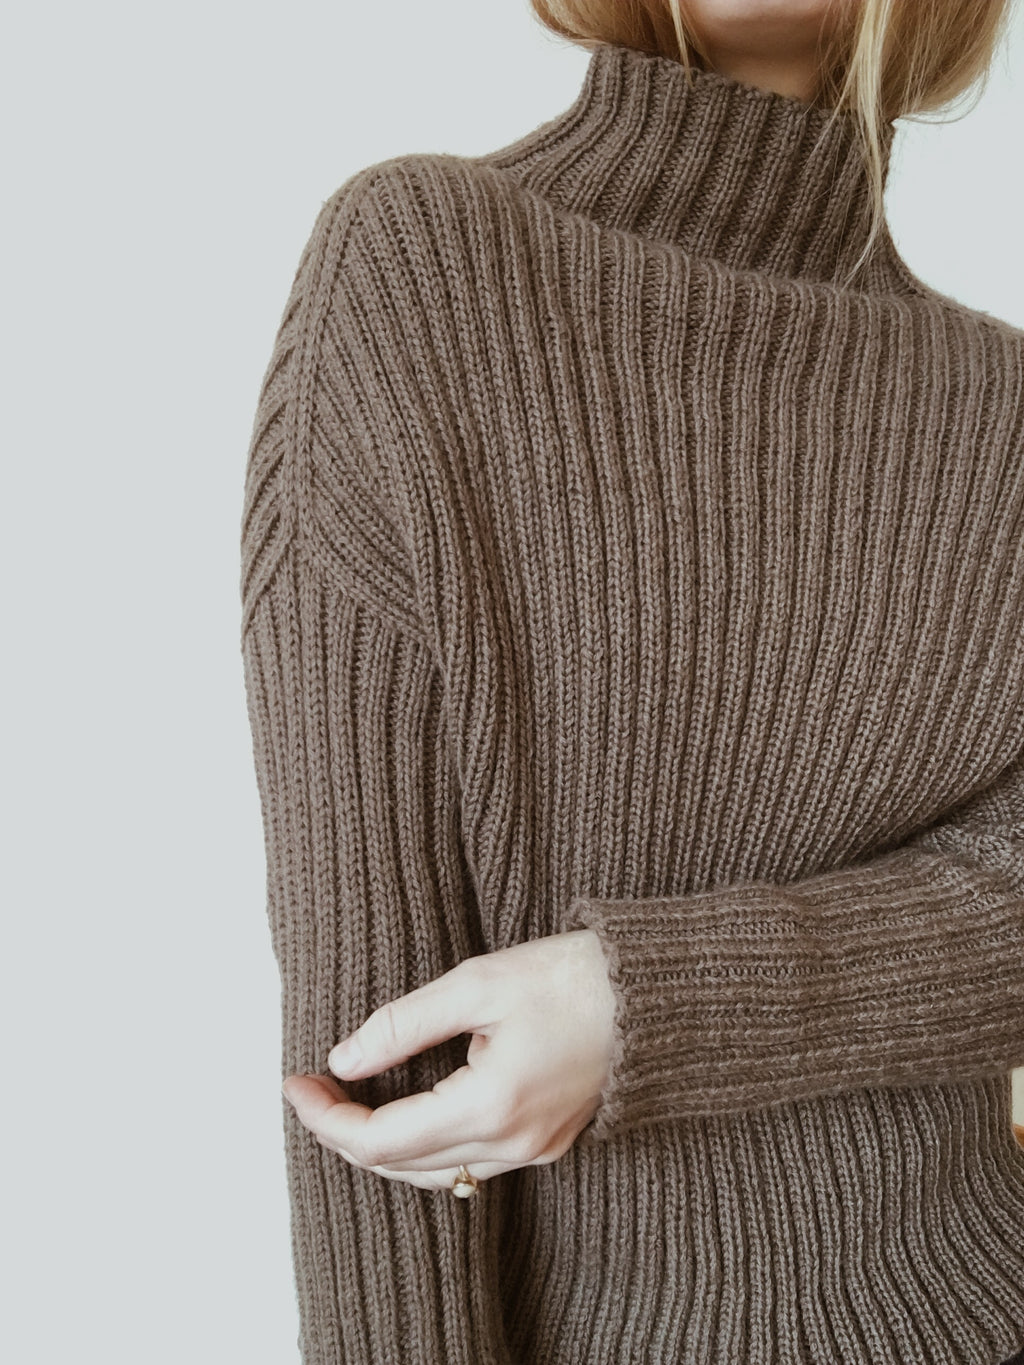 Sweater No. 8